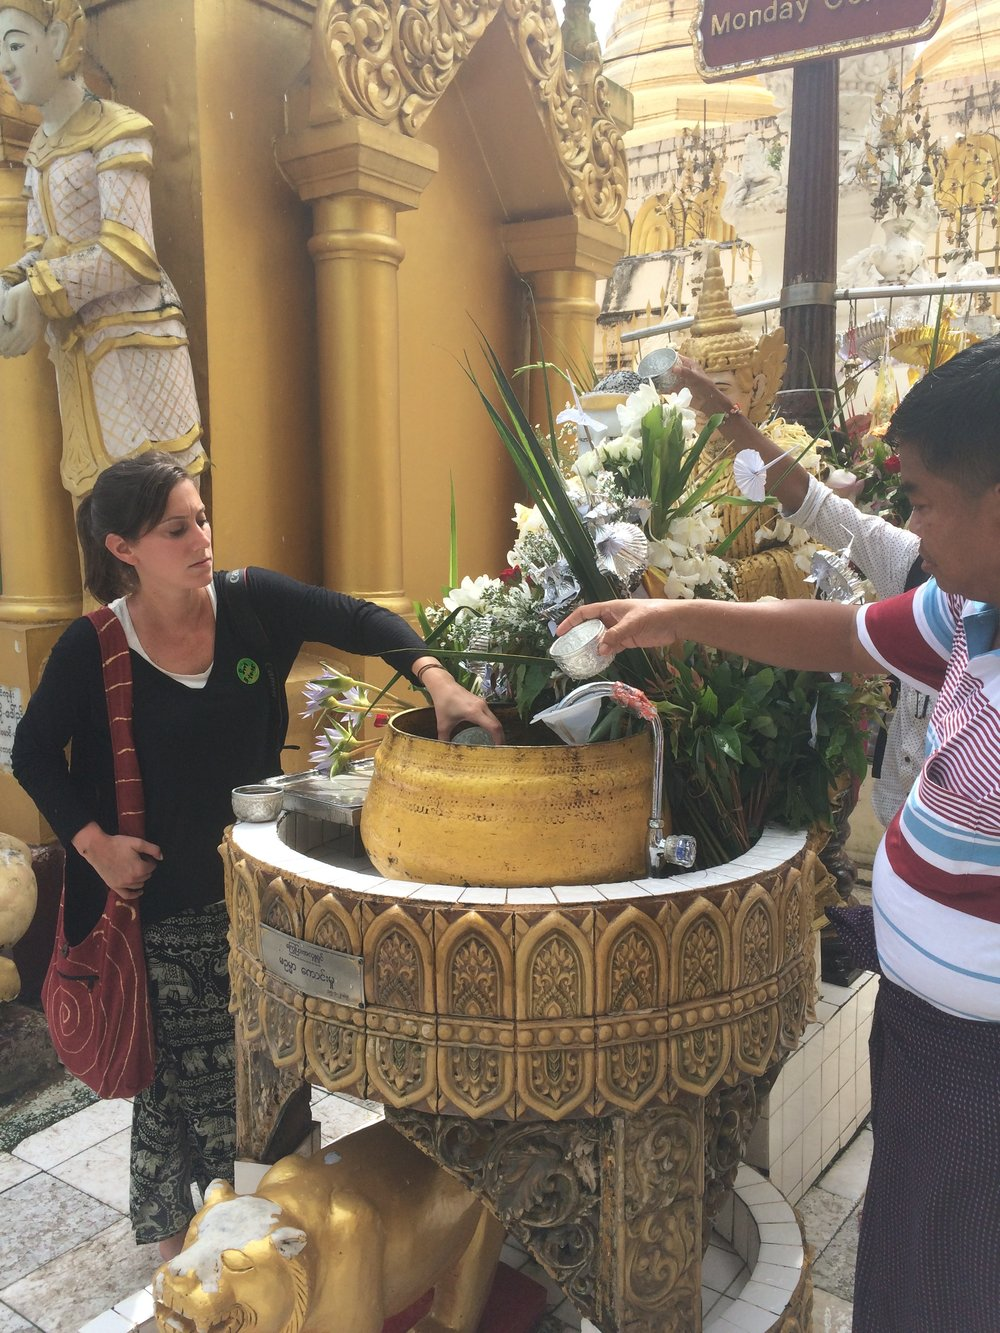 Partaking in rituals at Shwedagon Pagoda in Yangon, Myanmar